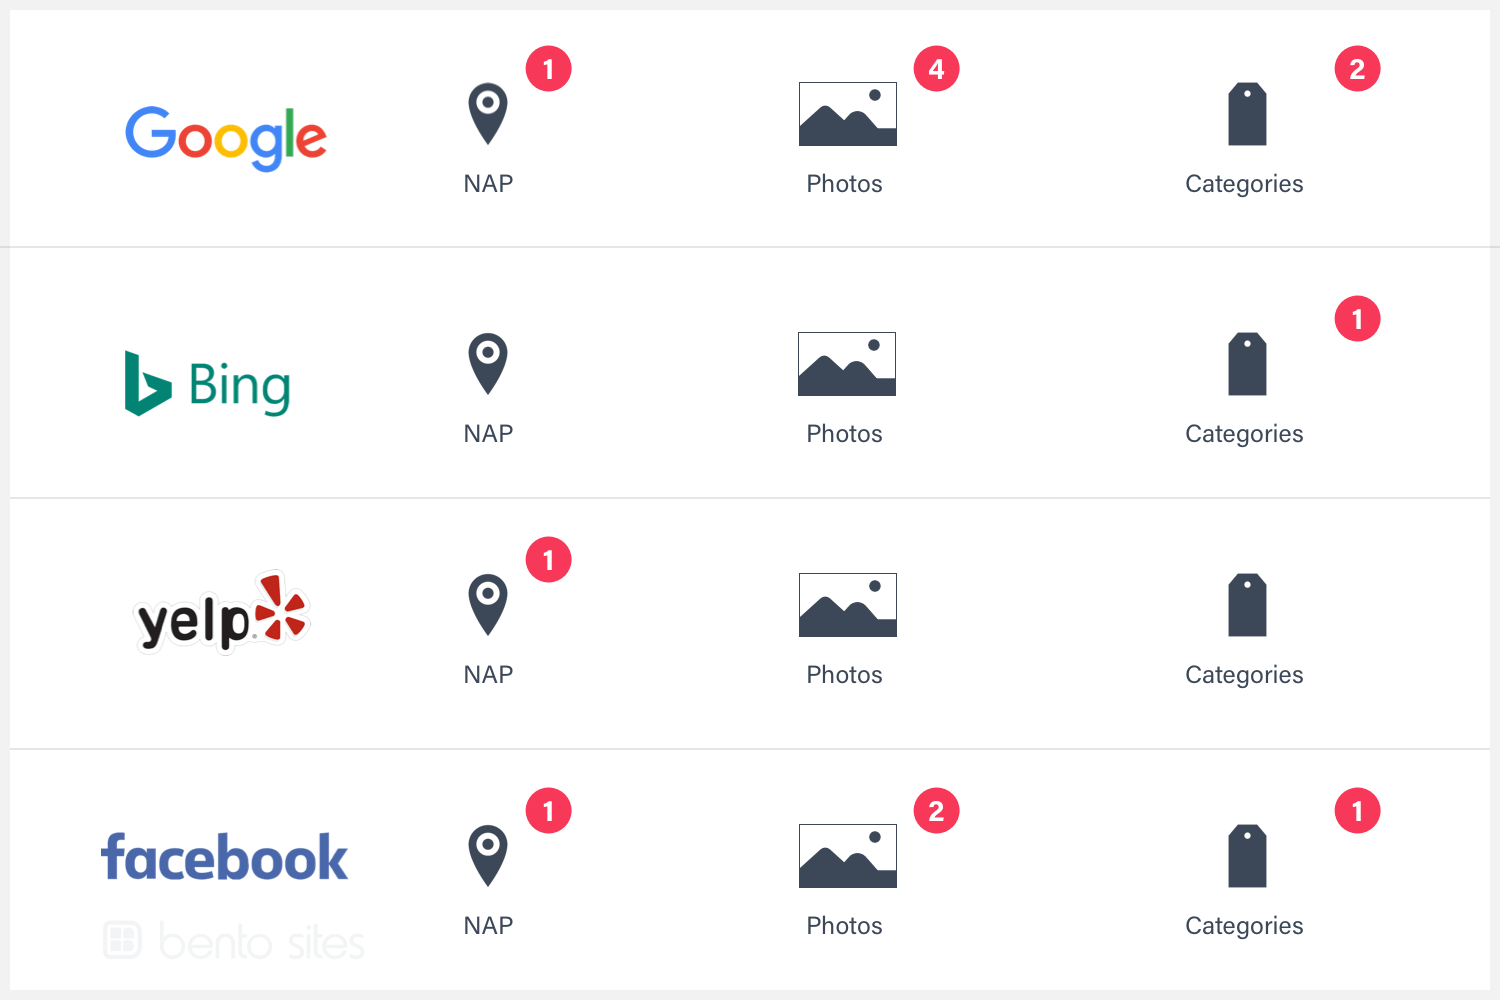 Example of auditing business  listings on Google, Bing, Yelp and Facebook